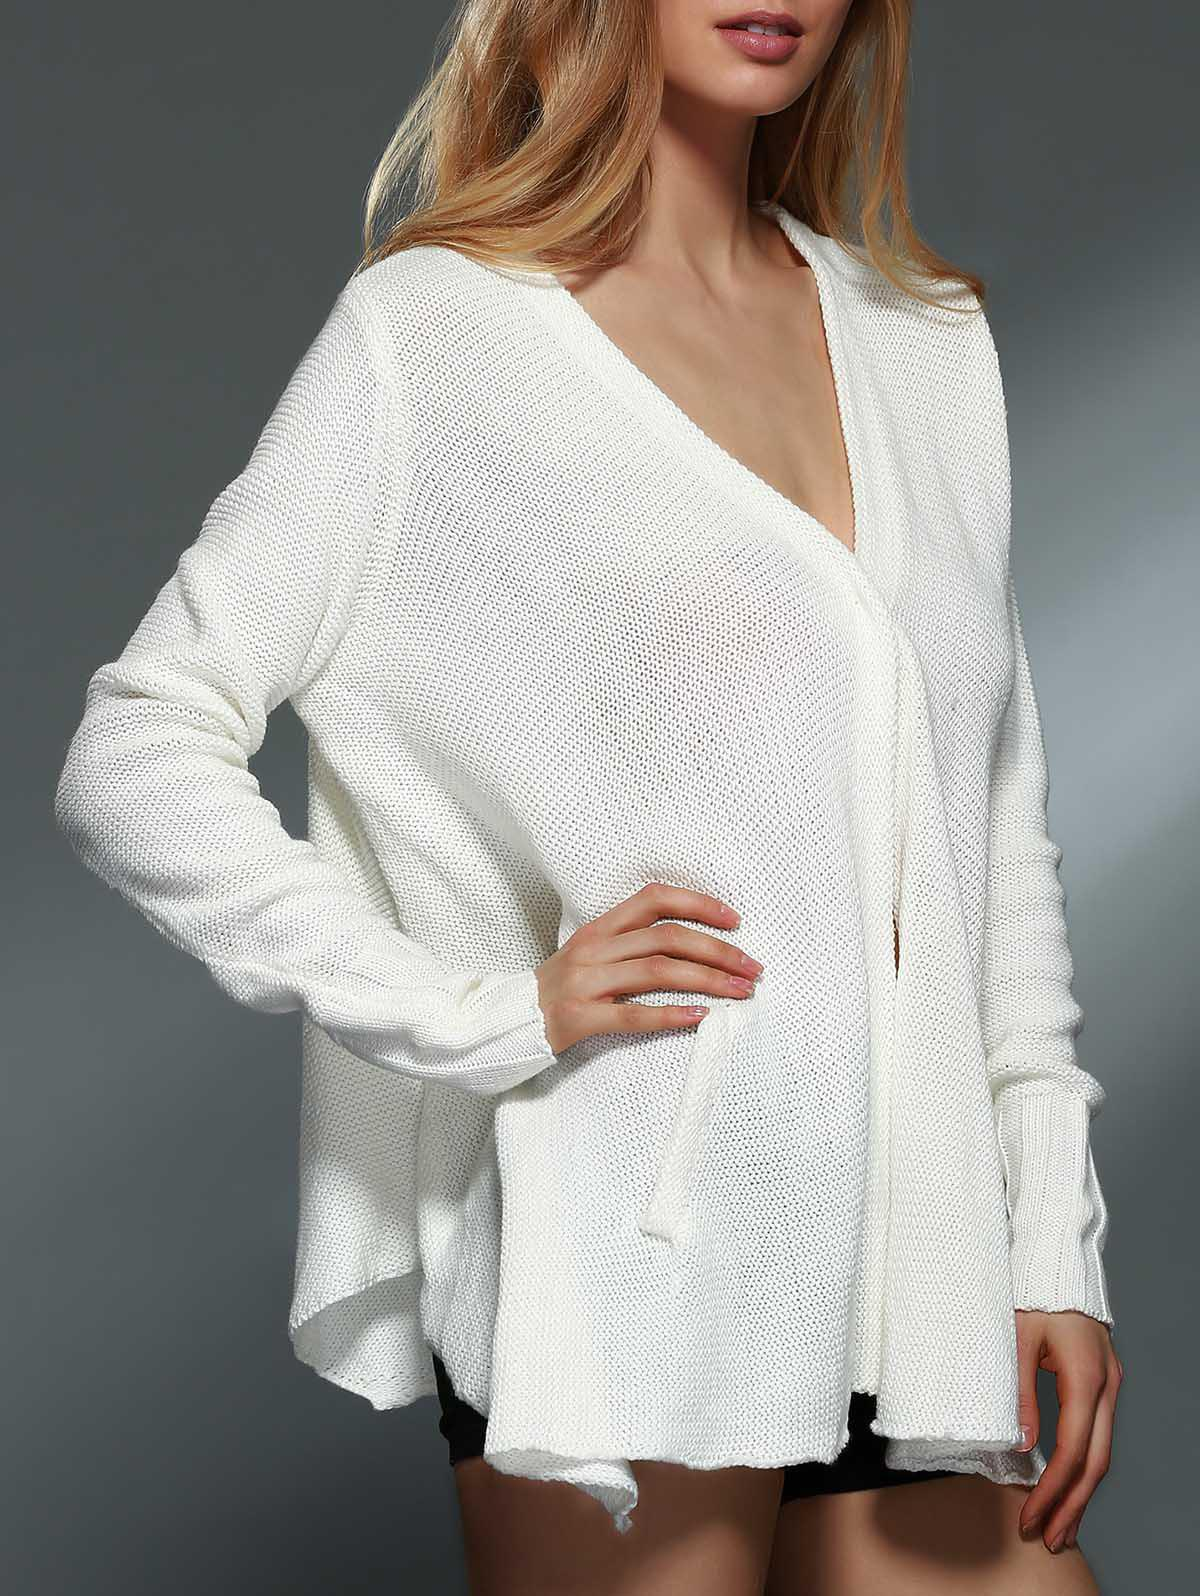 Trendy Simple Style Solid Color V-Neck Long Sleeve Asymmetric Cardigan For Women